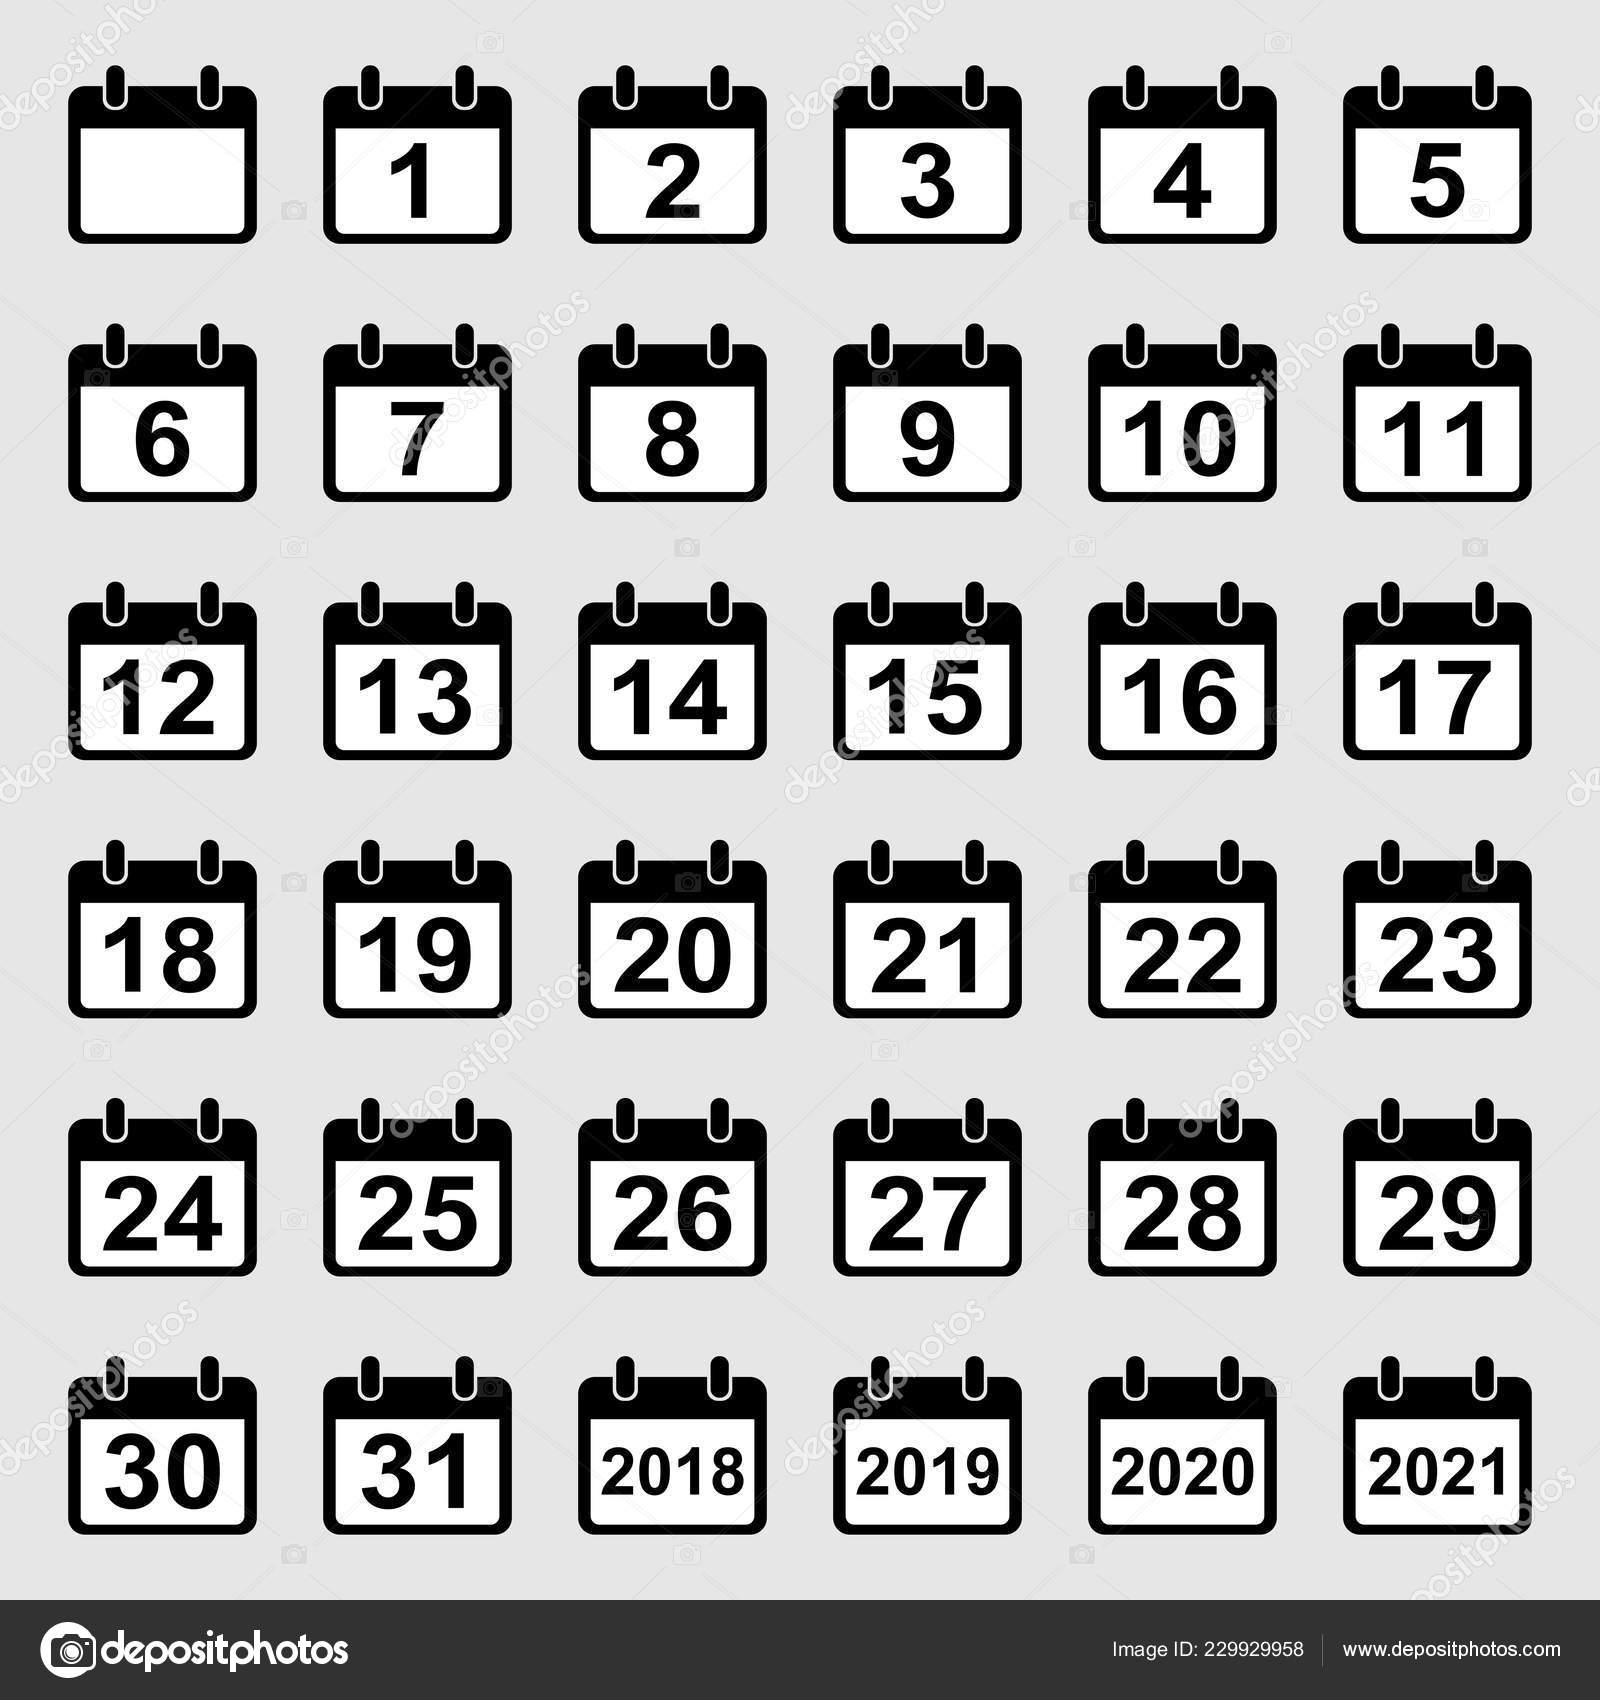 Calendar Days Icon.Vector Set Calendar Icons All Days Isolated White Background Stock